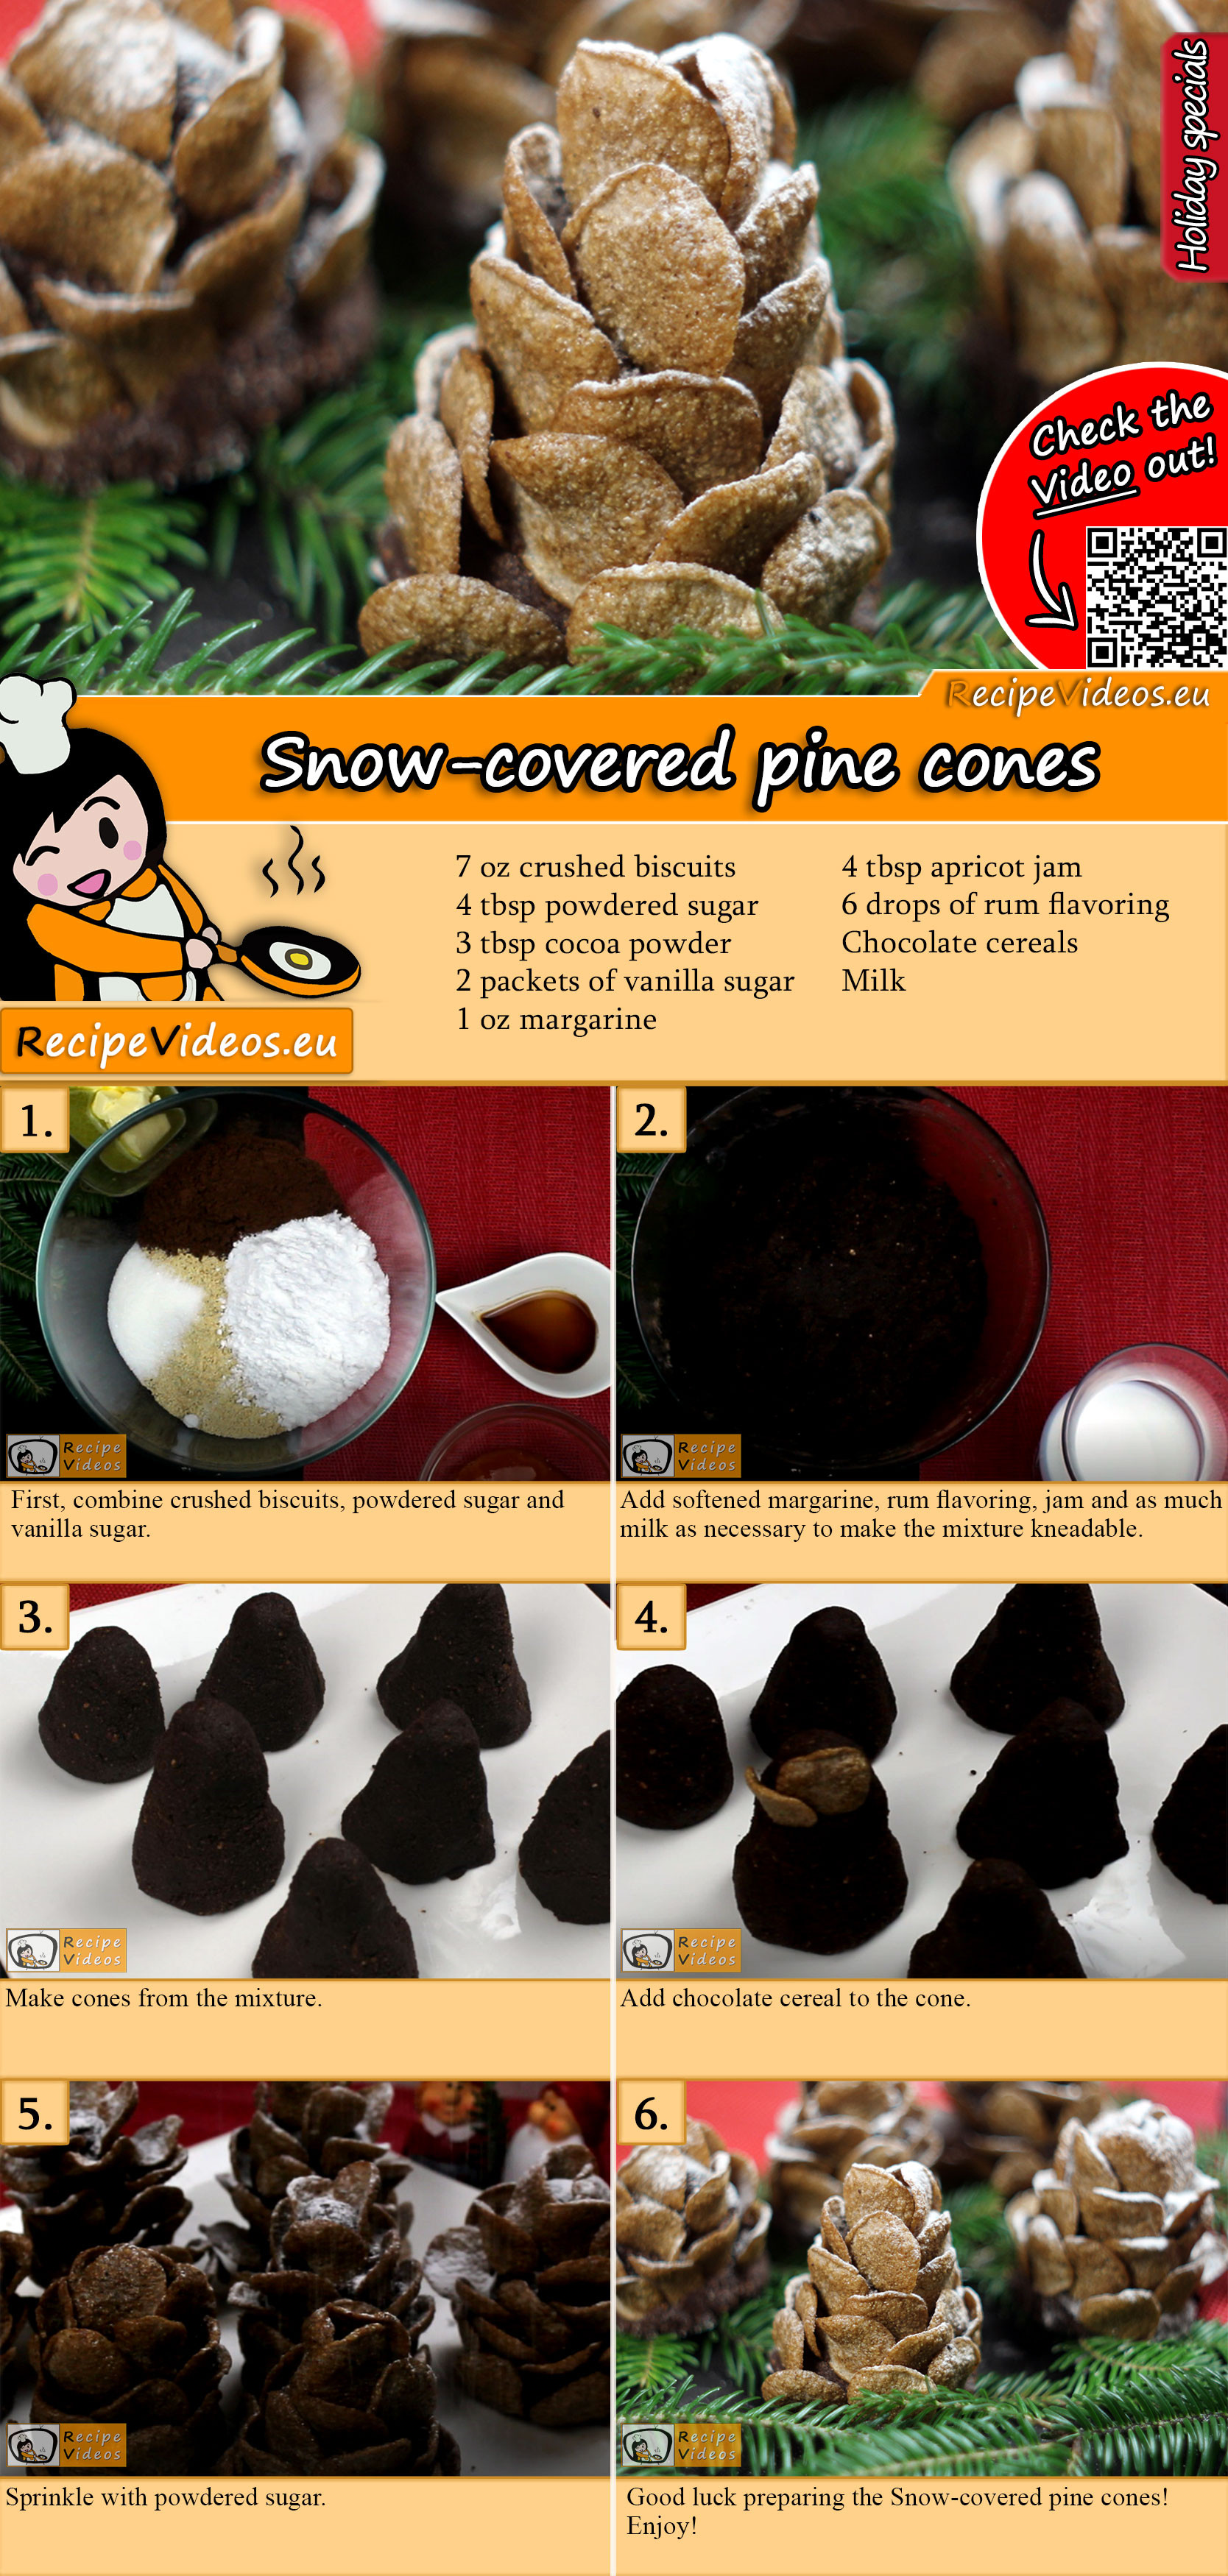 Snow-covered pine cones recipe with video